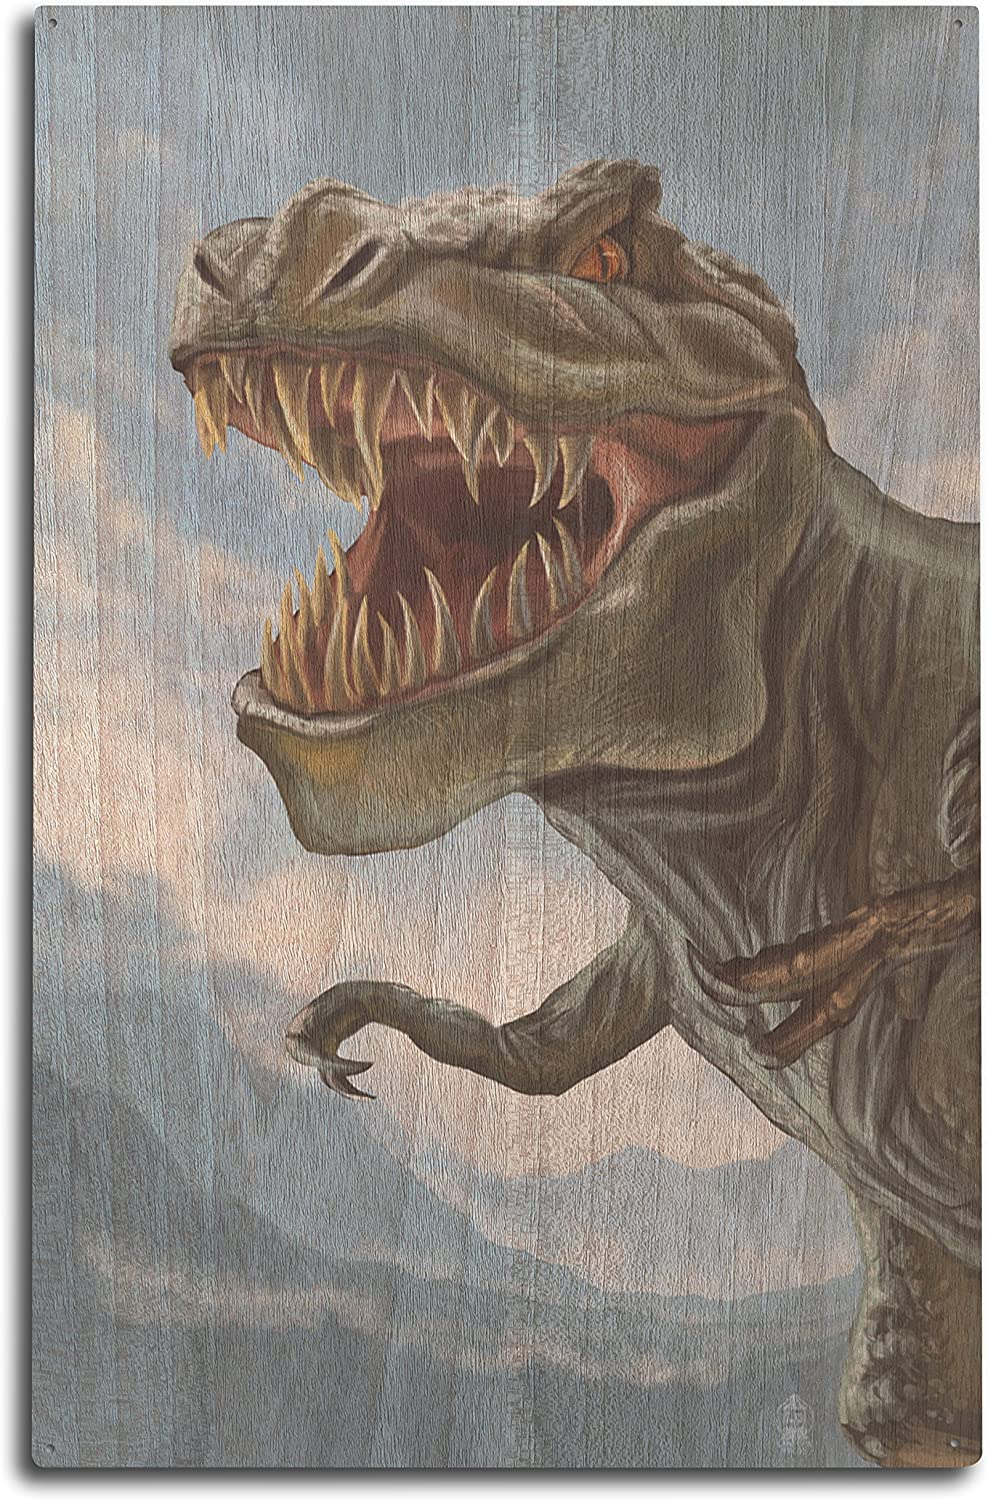 Lantern Press T Rex Dinosaur (10x15 Wood Wall Sign, Wall Decor Ready to Hang)